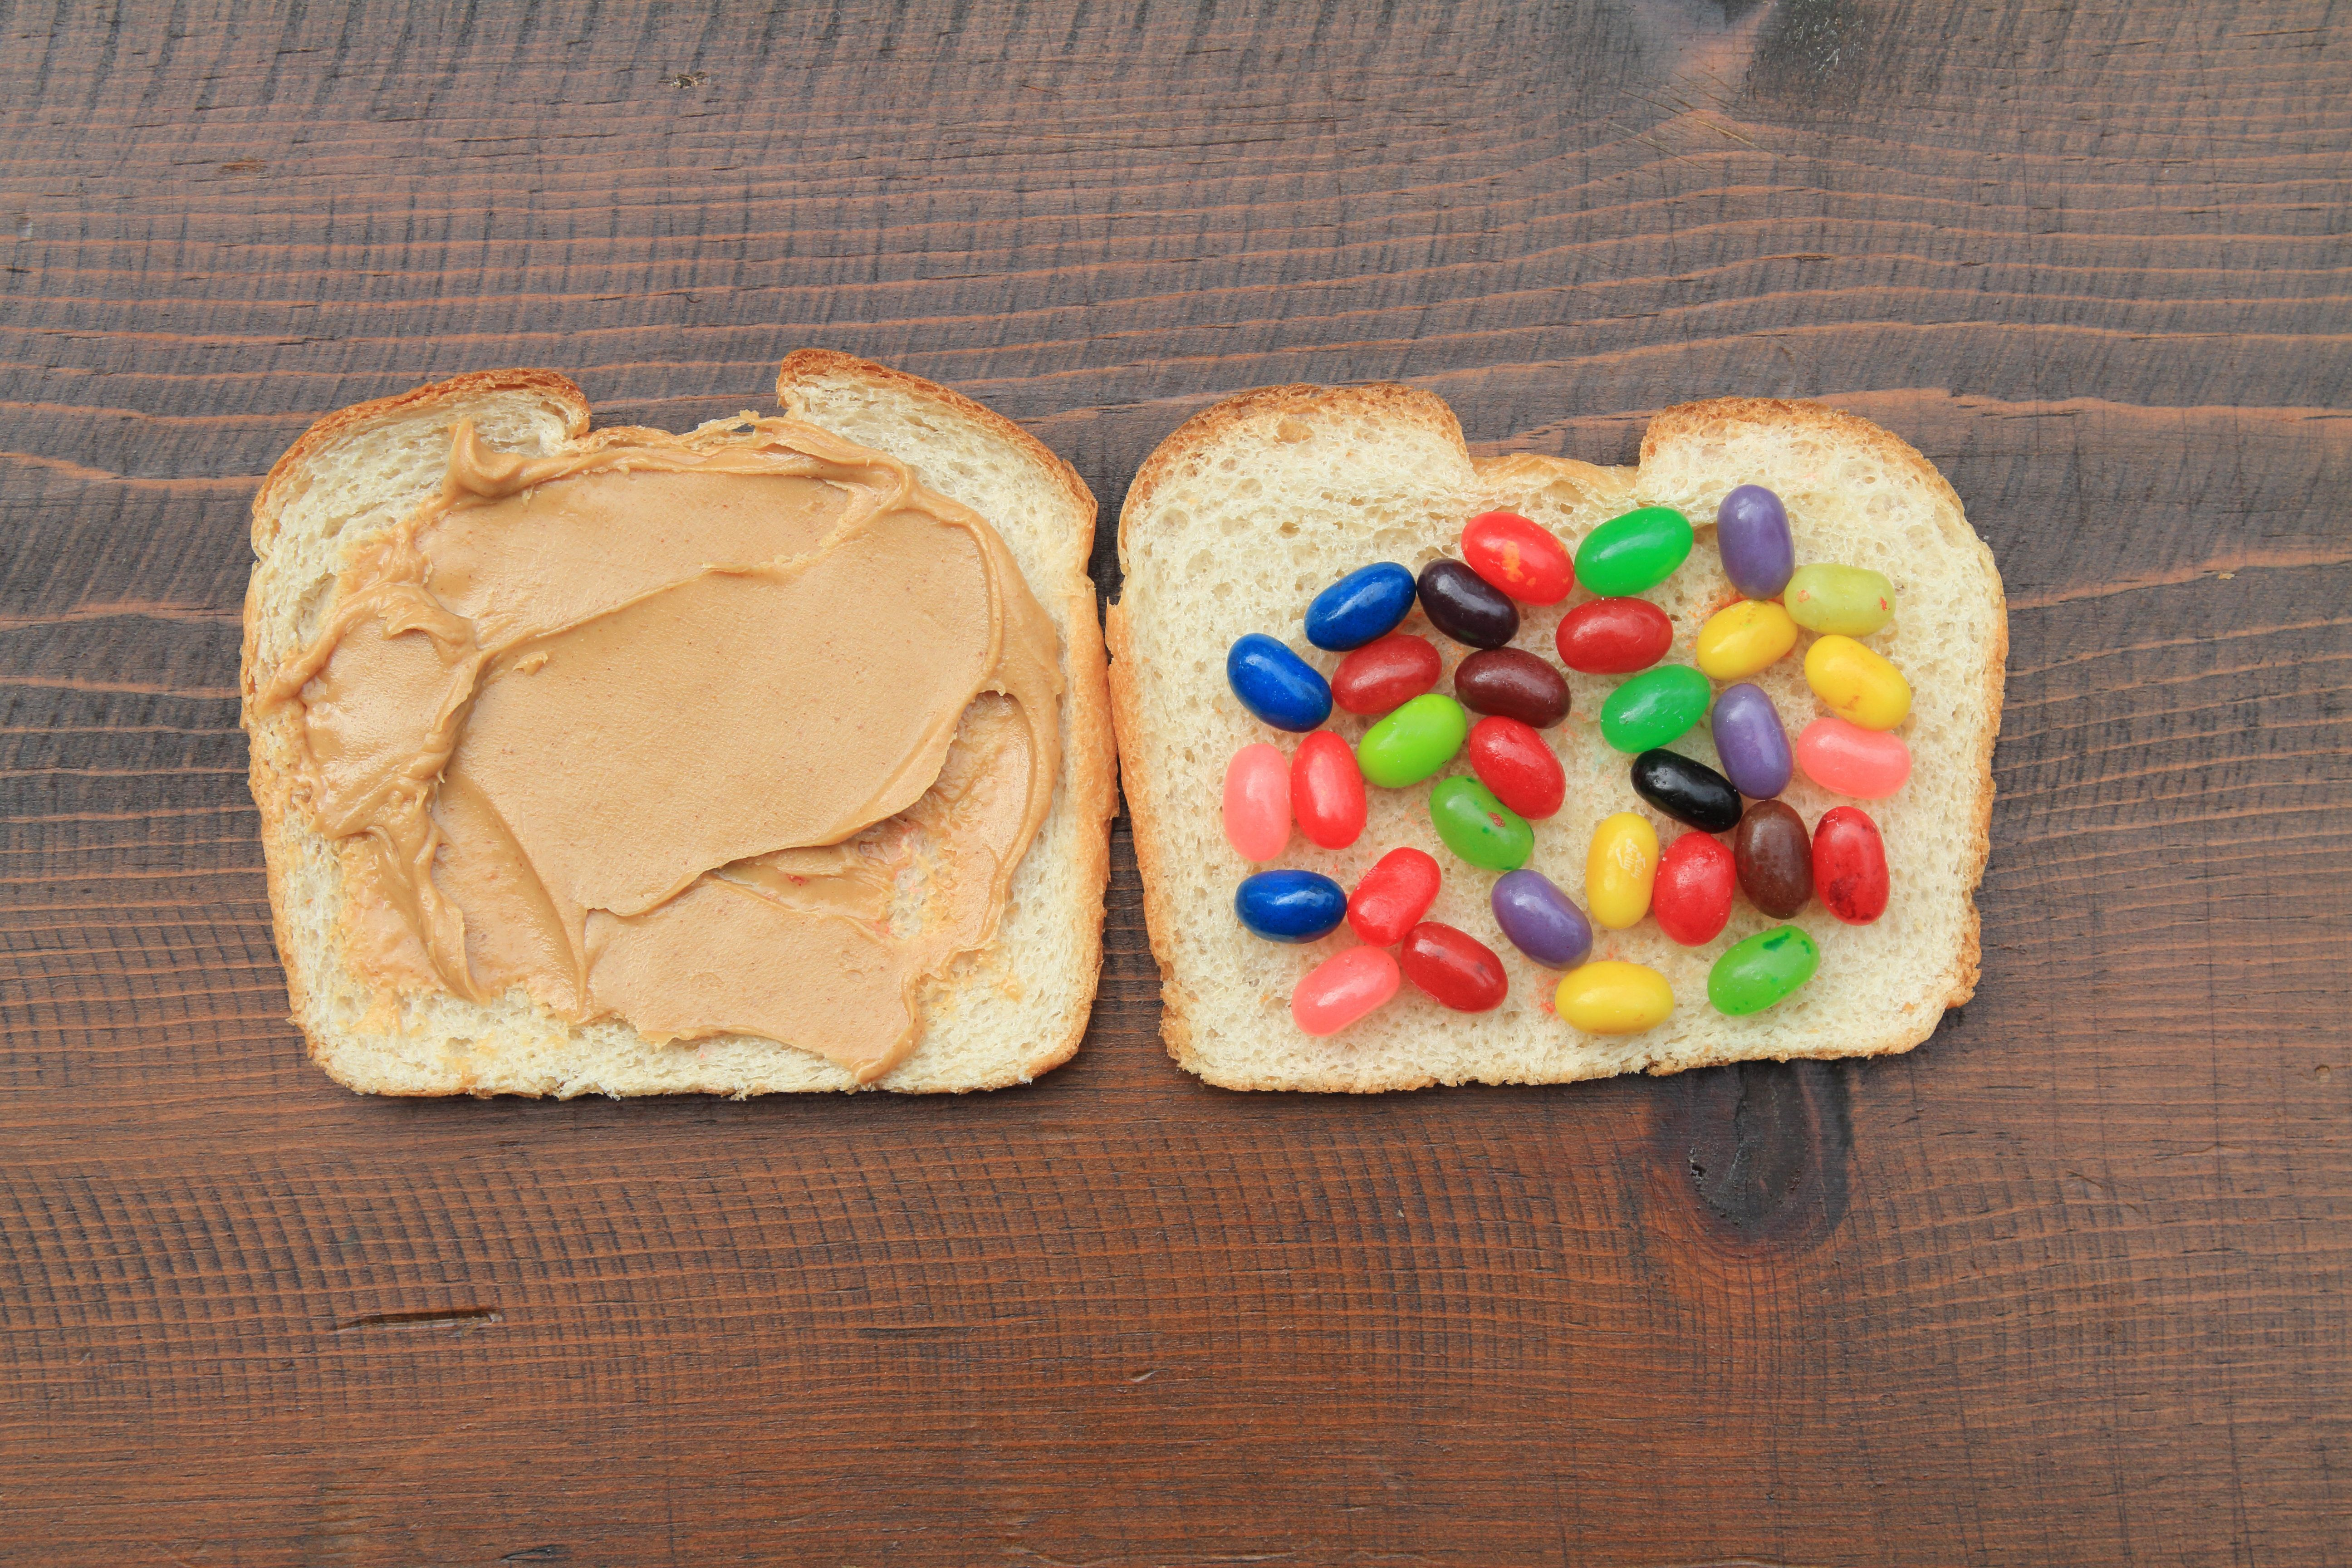 Peanut butter and jelly bean sandwich. Junk food concept. Unusual food combination. Humor.